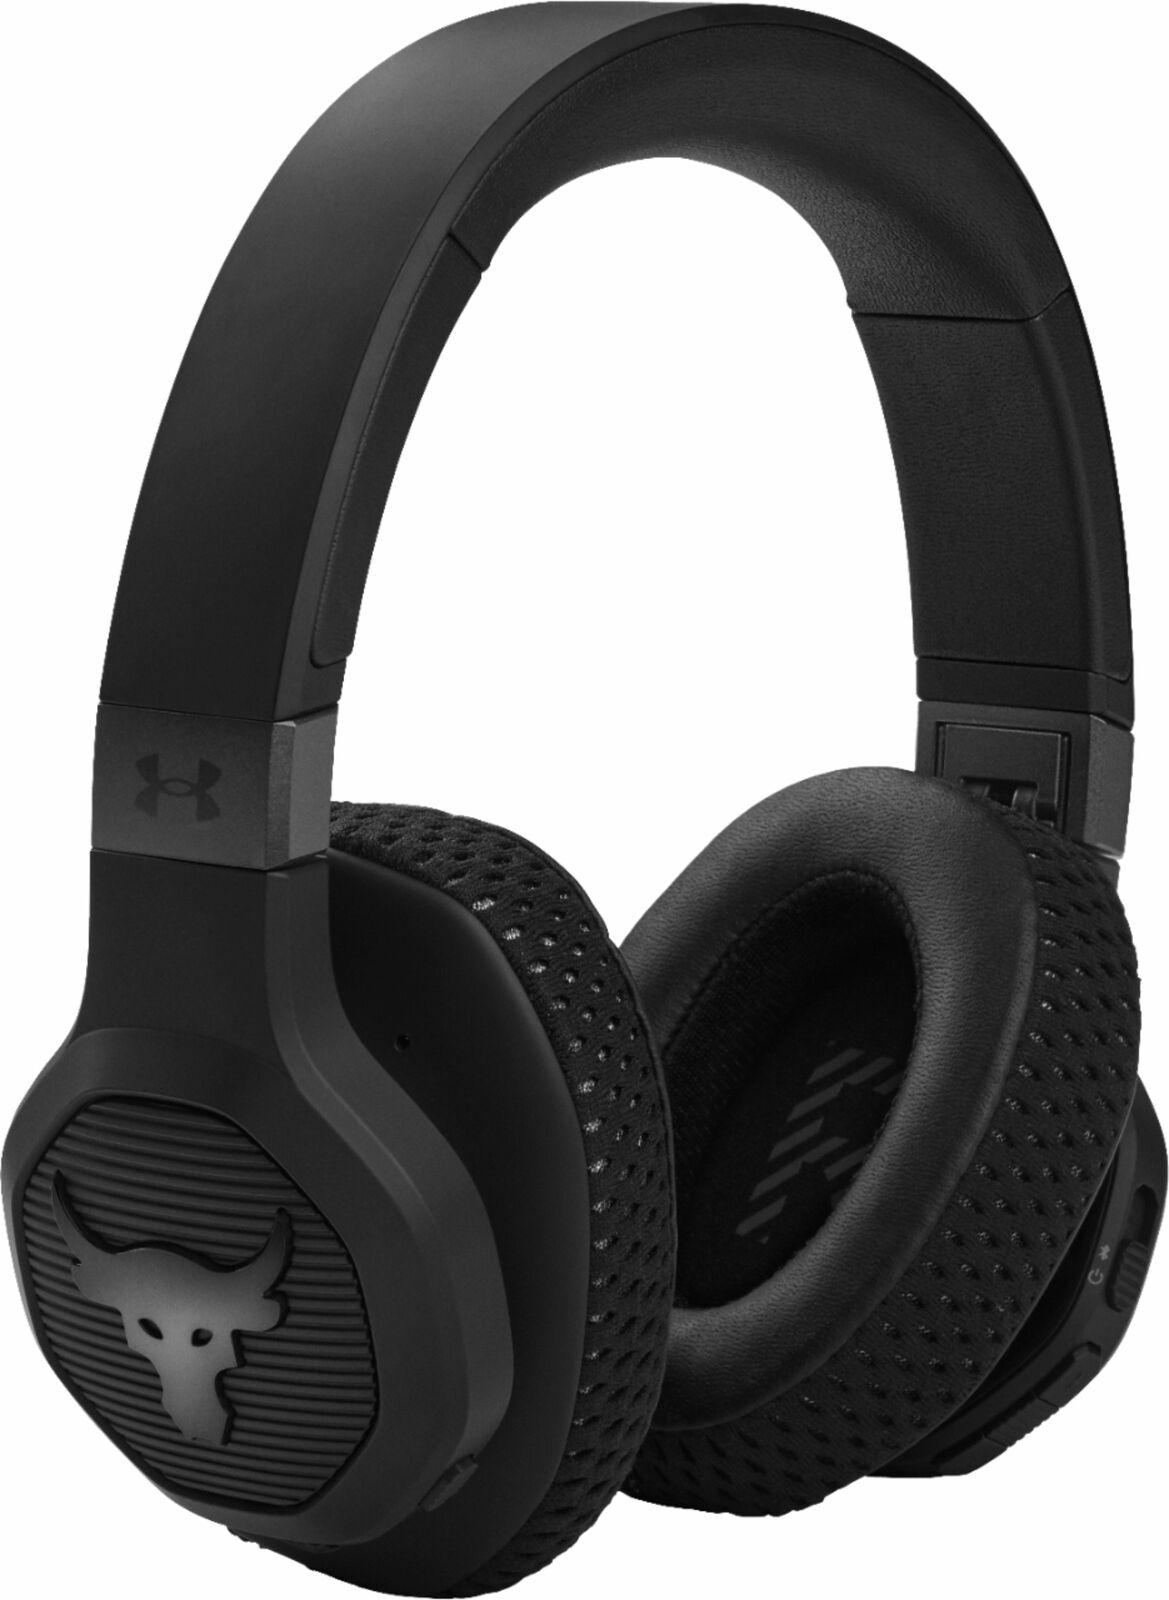 JBL - Under Armour Project Rock Wireless Over-the-Ear Headphones - Black